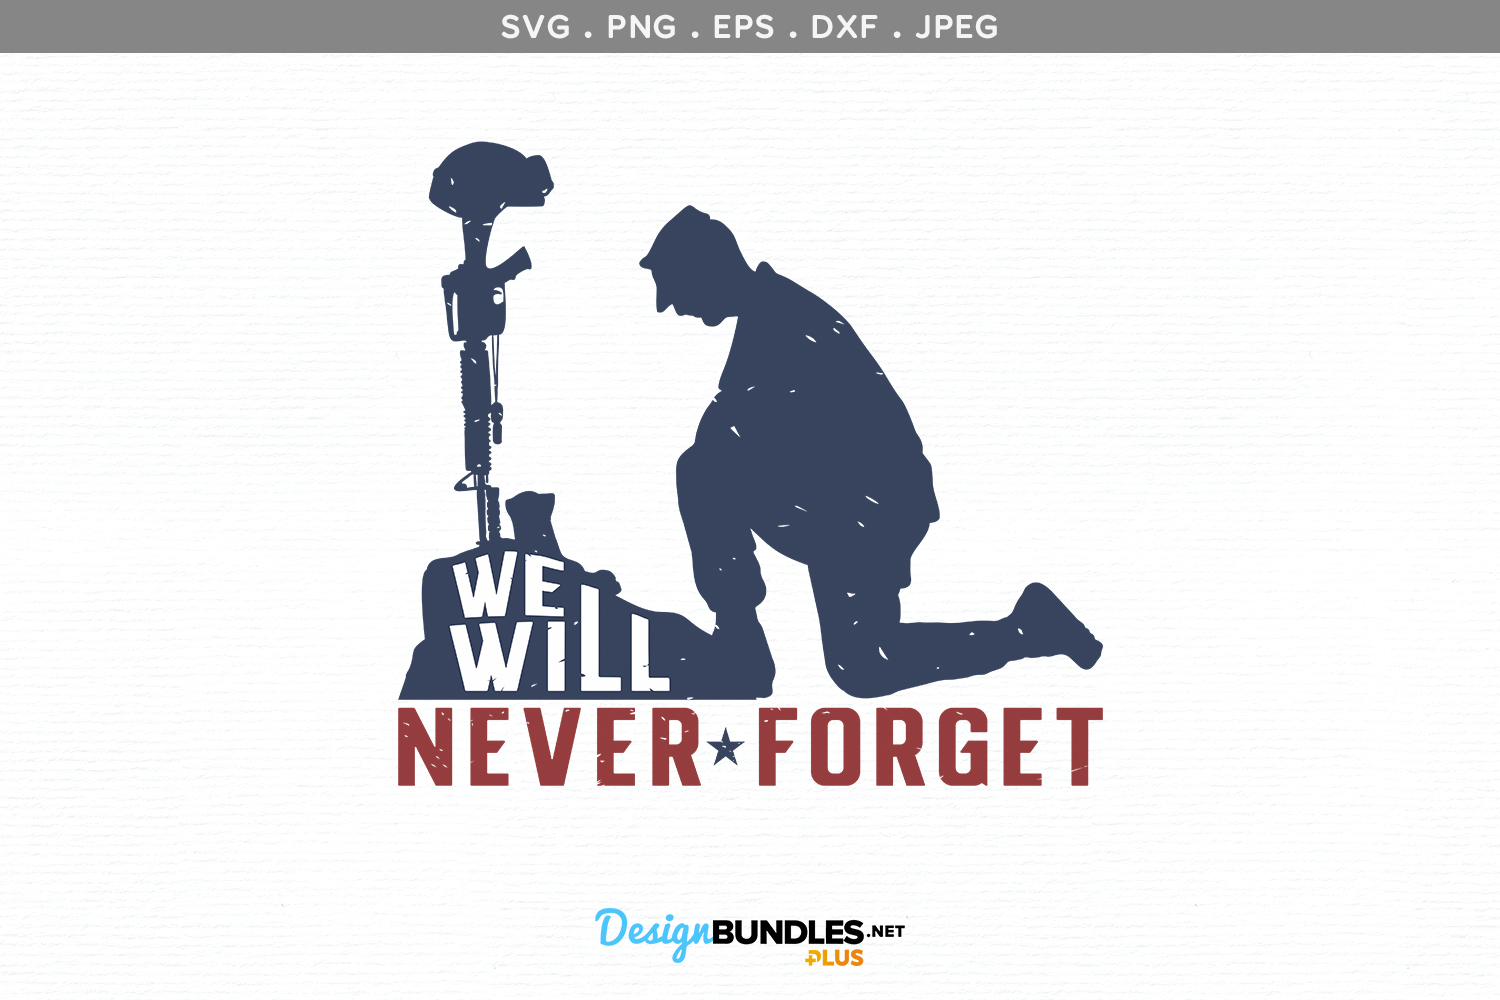 We Will Never Forget - svg, printable example image 2